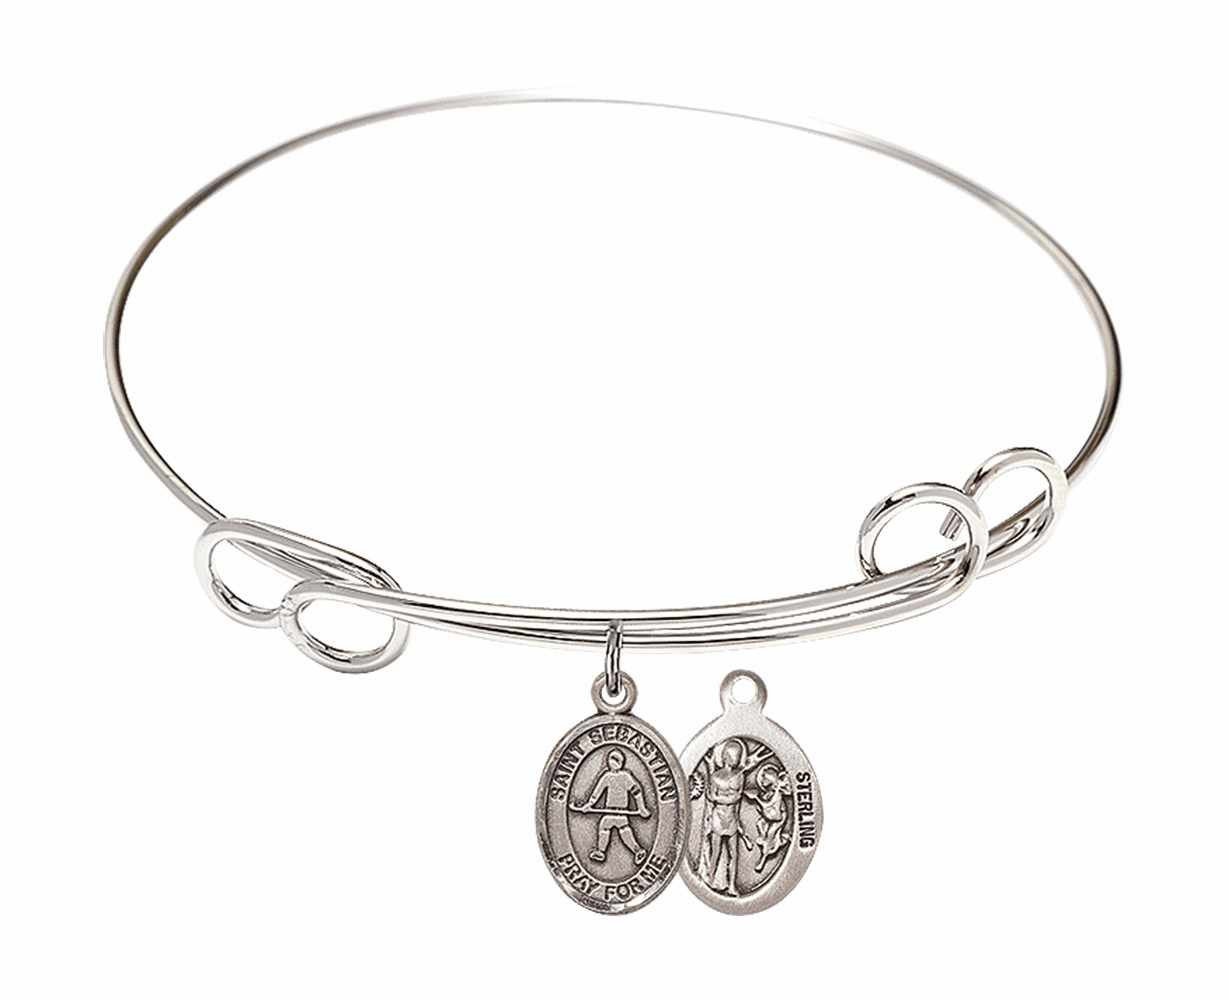 Round Loop St Sebastian Field Hockey Bangle Charm Bracelet by Bliss